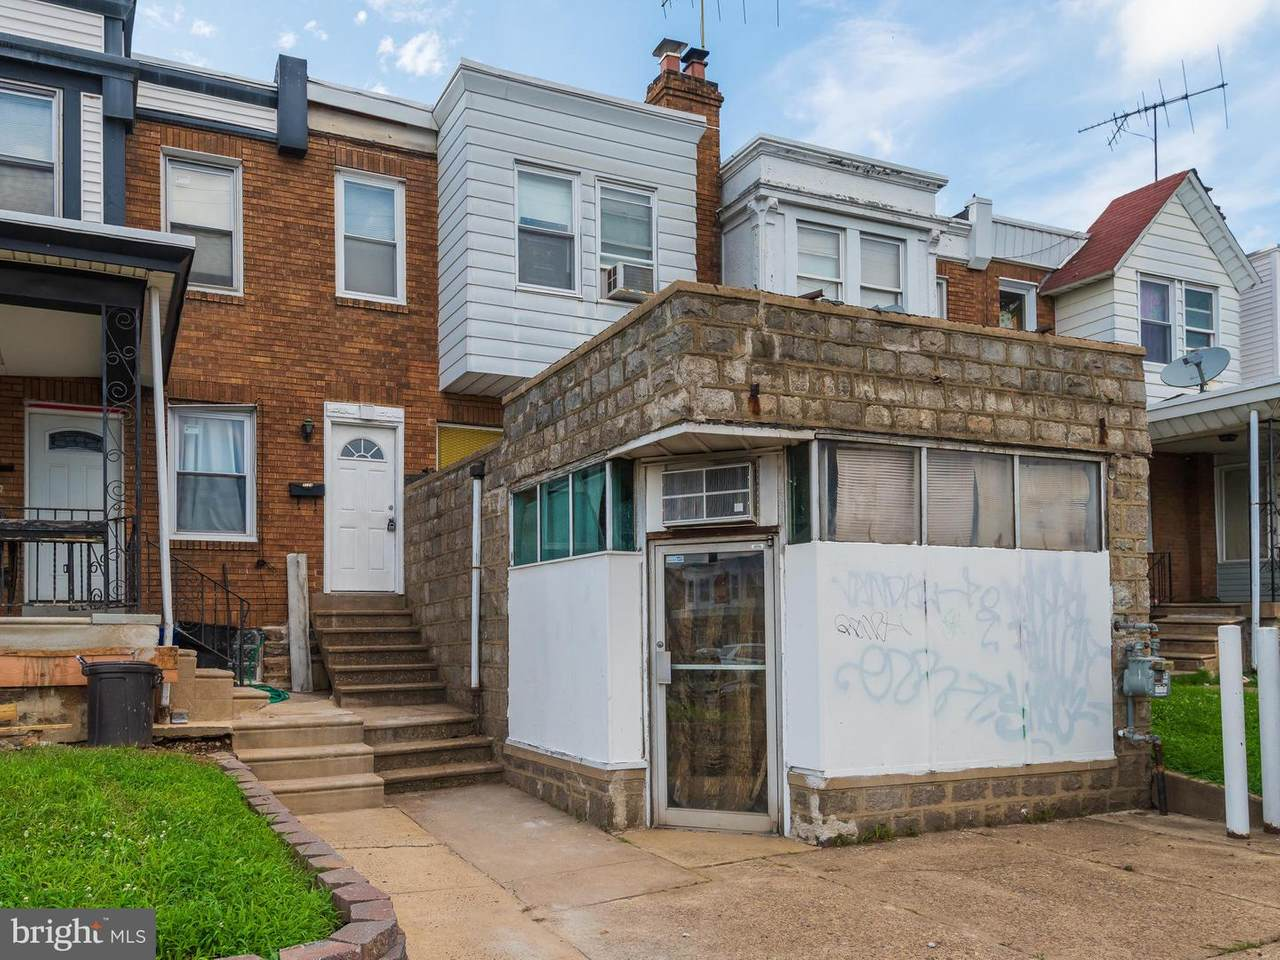 7124 Torresdale Avenue - Photo 1